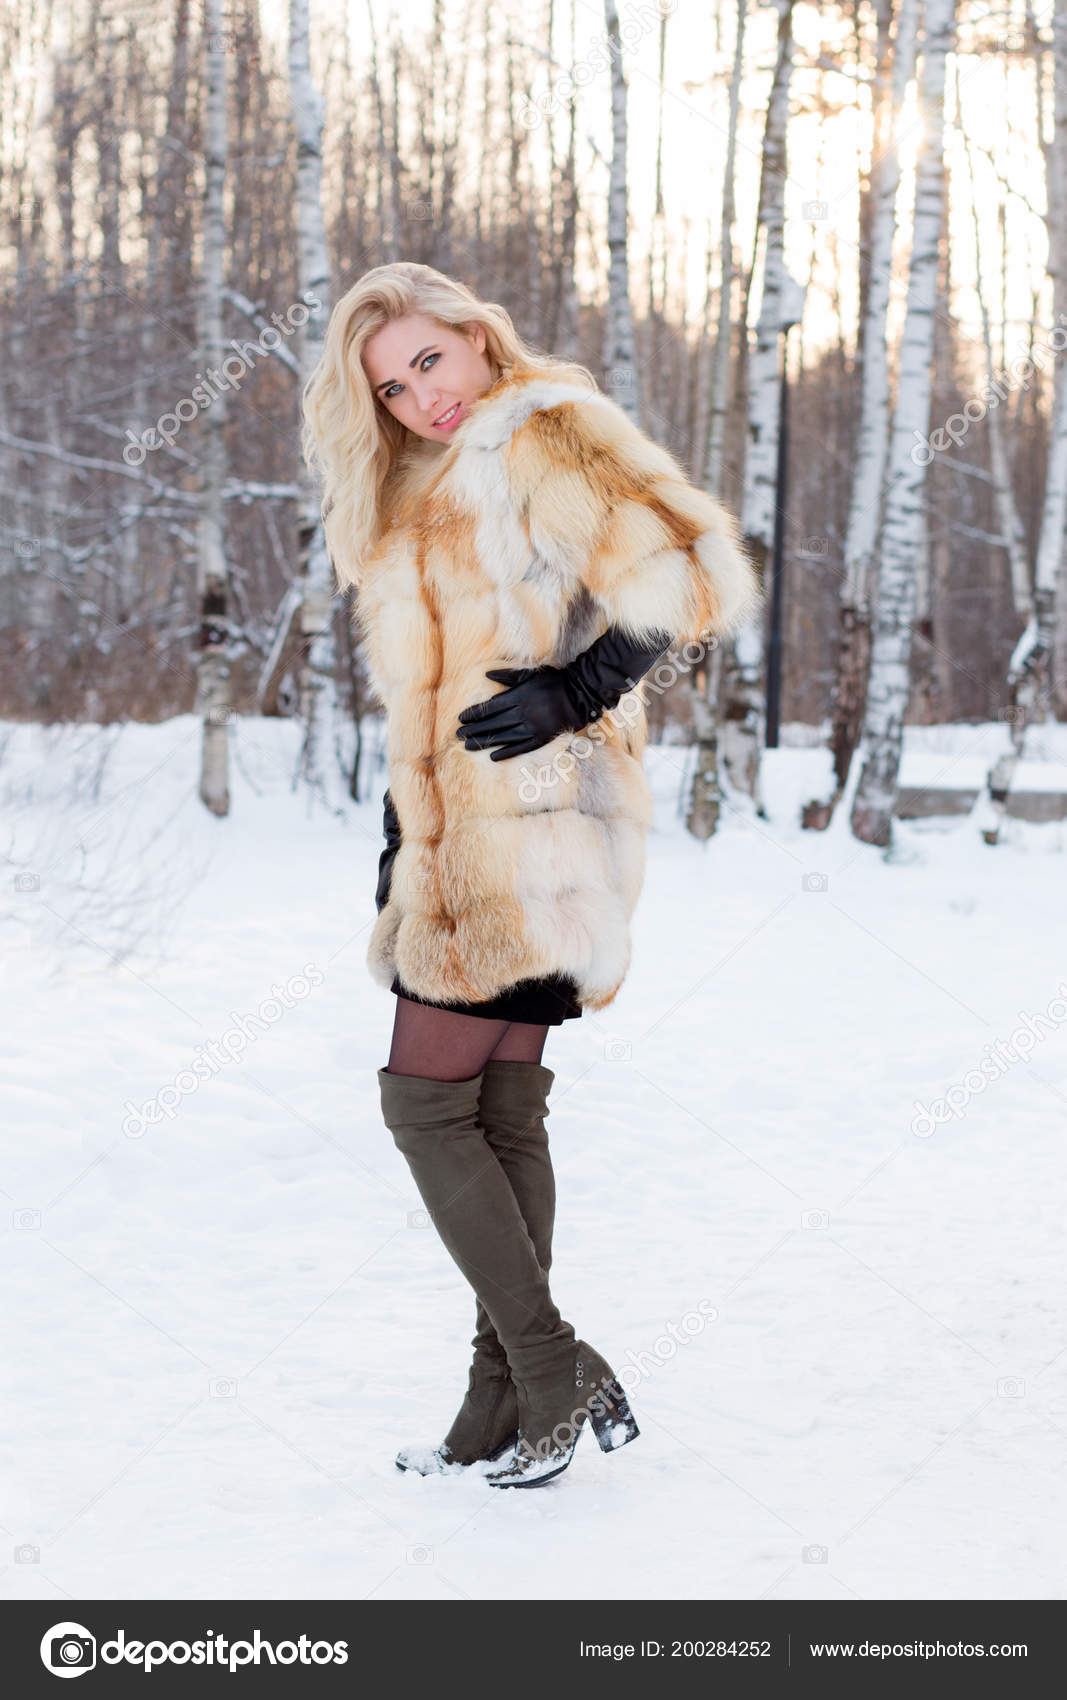 c6544033b Pretty Blonde Fur Coat Leather Gloves Poses Outdoor Winter Day ...